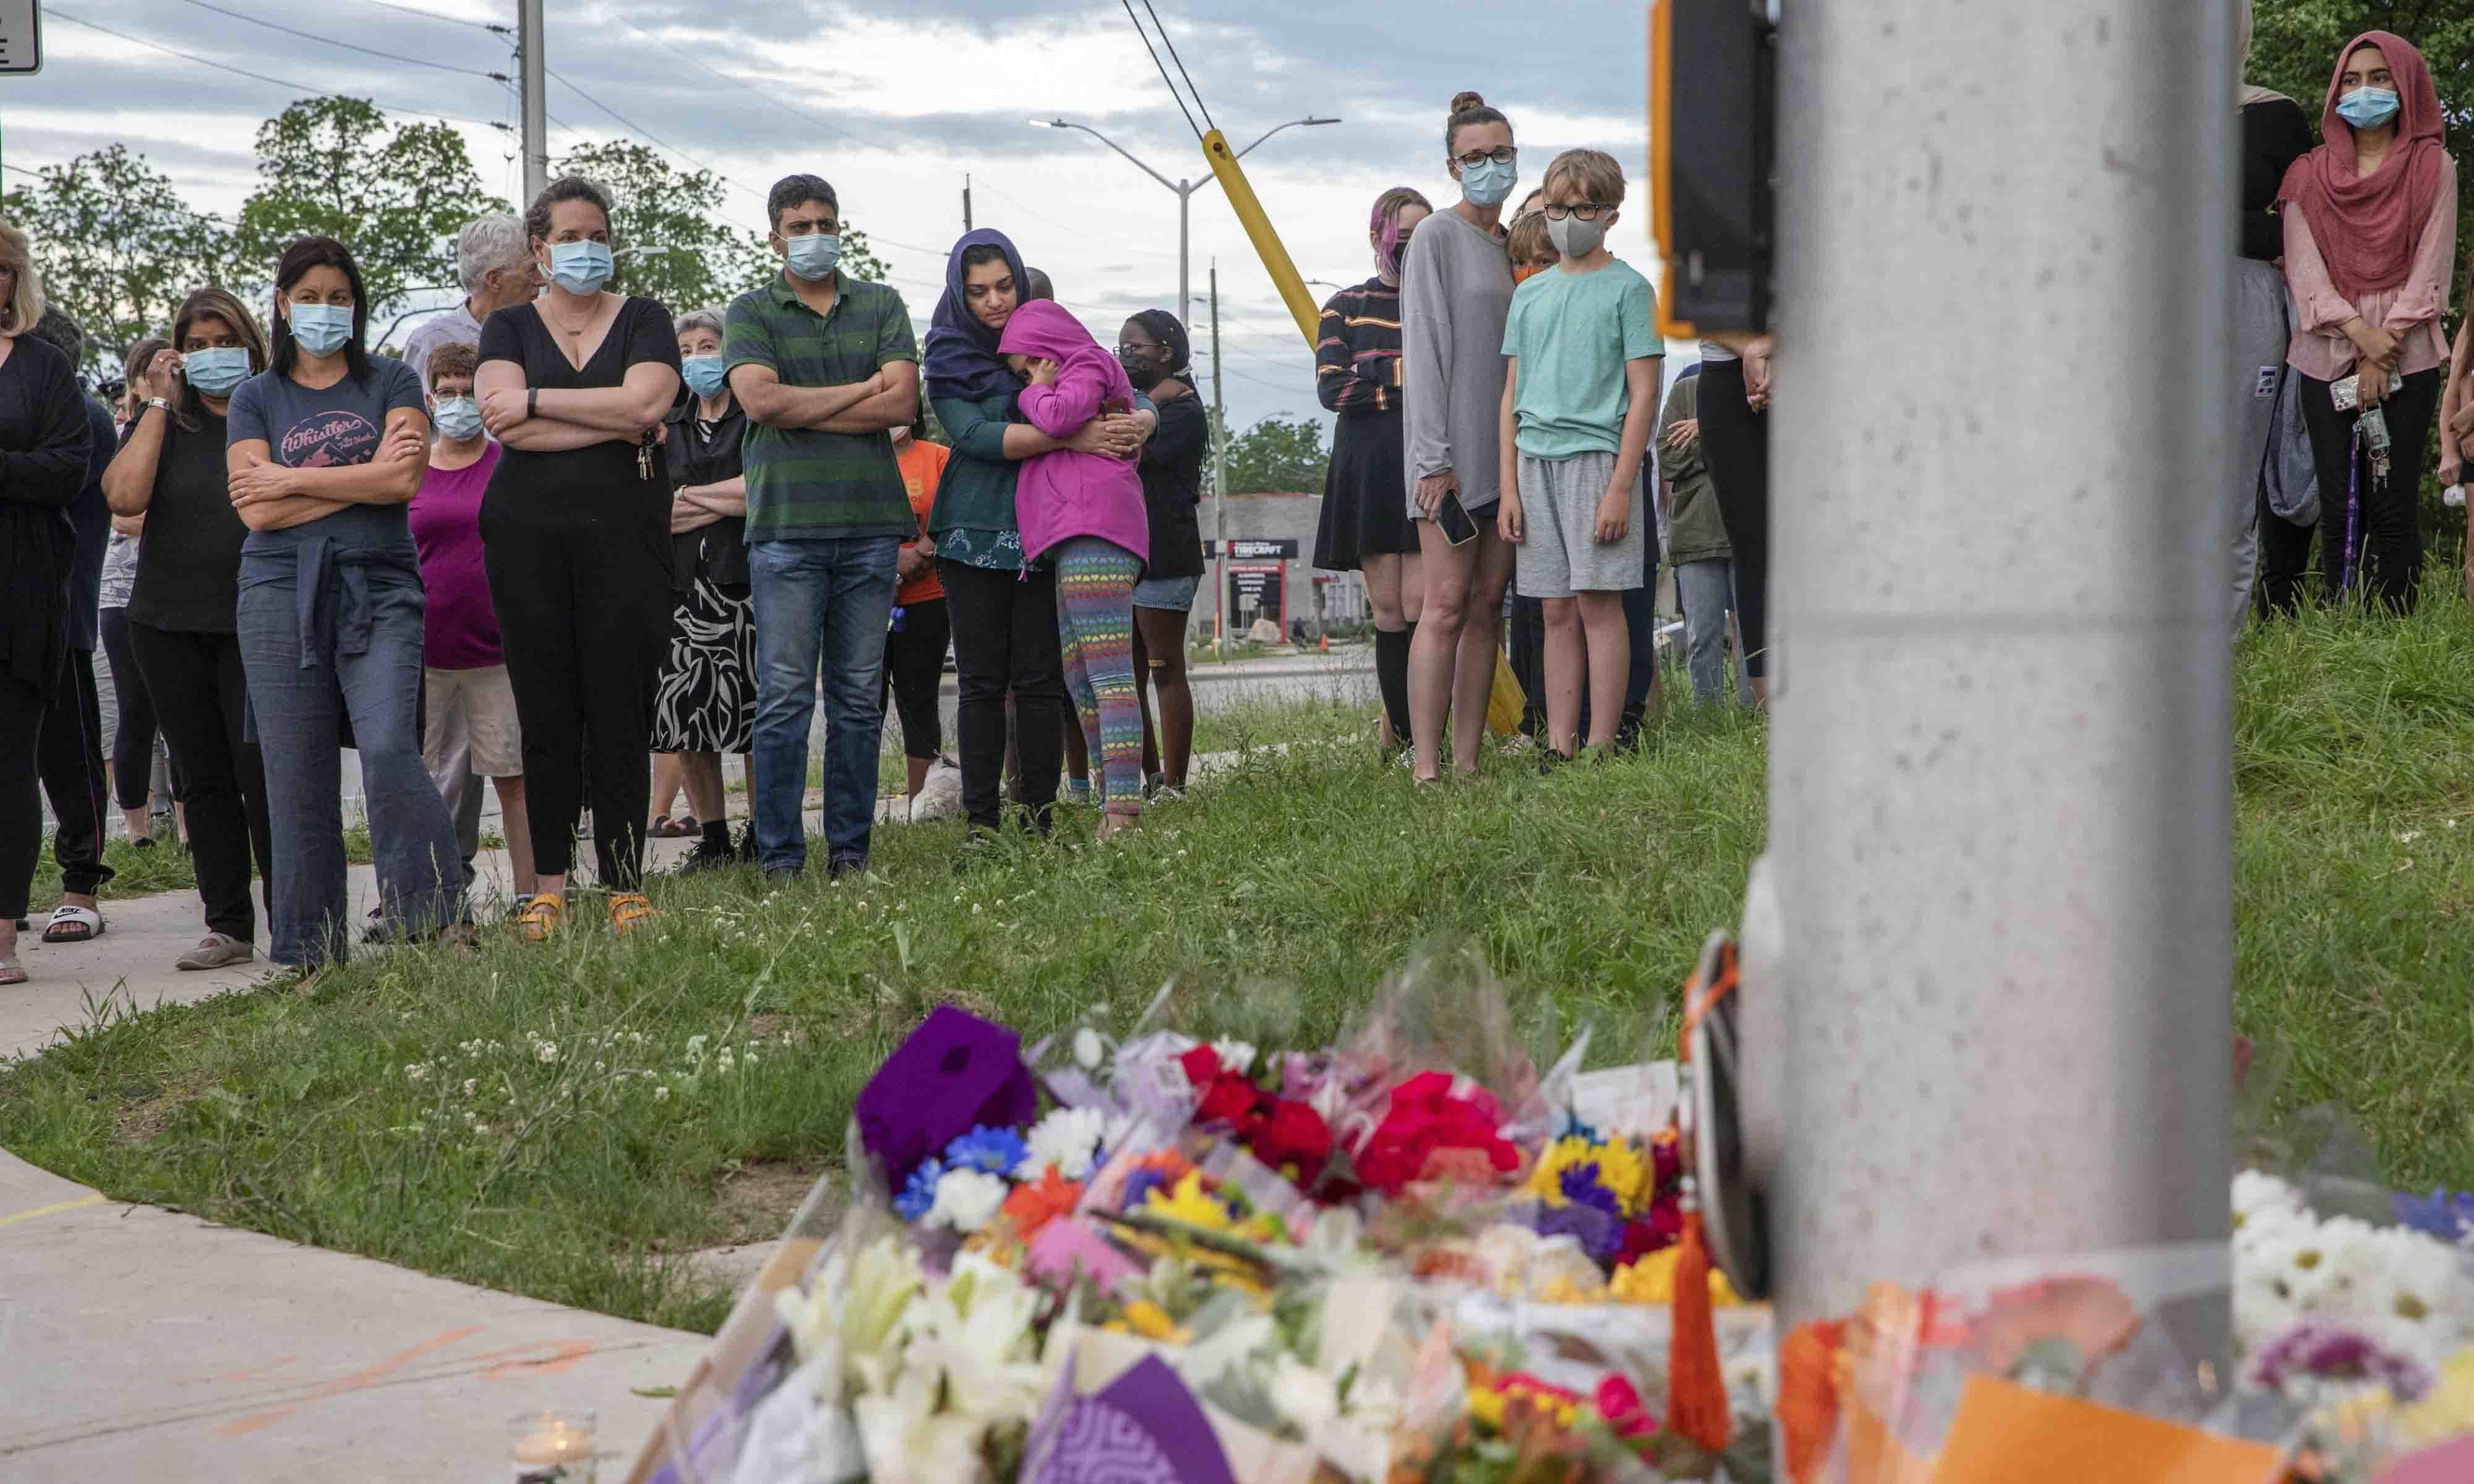 People attend a memorial at the location where a family of five was hit by a driver, in London, Ontario, on June 7. — AP